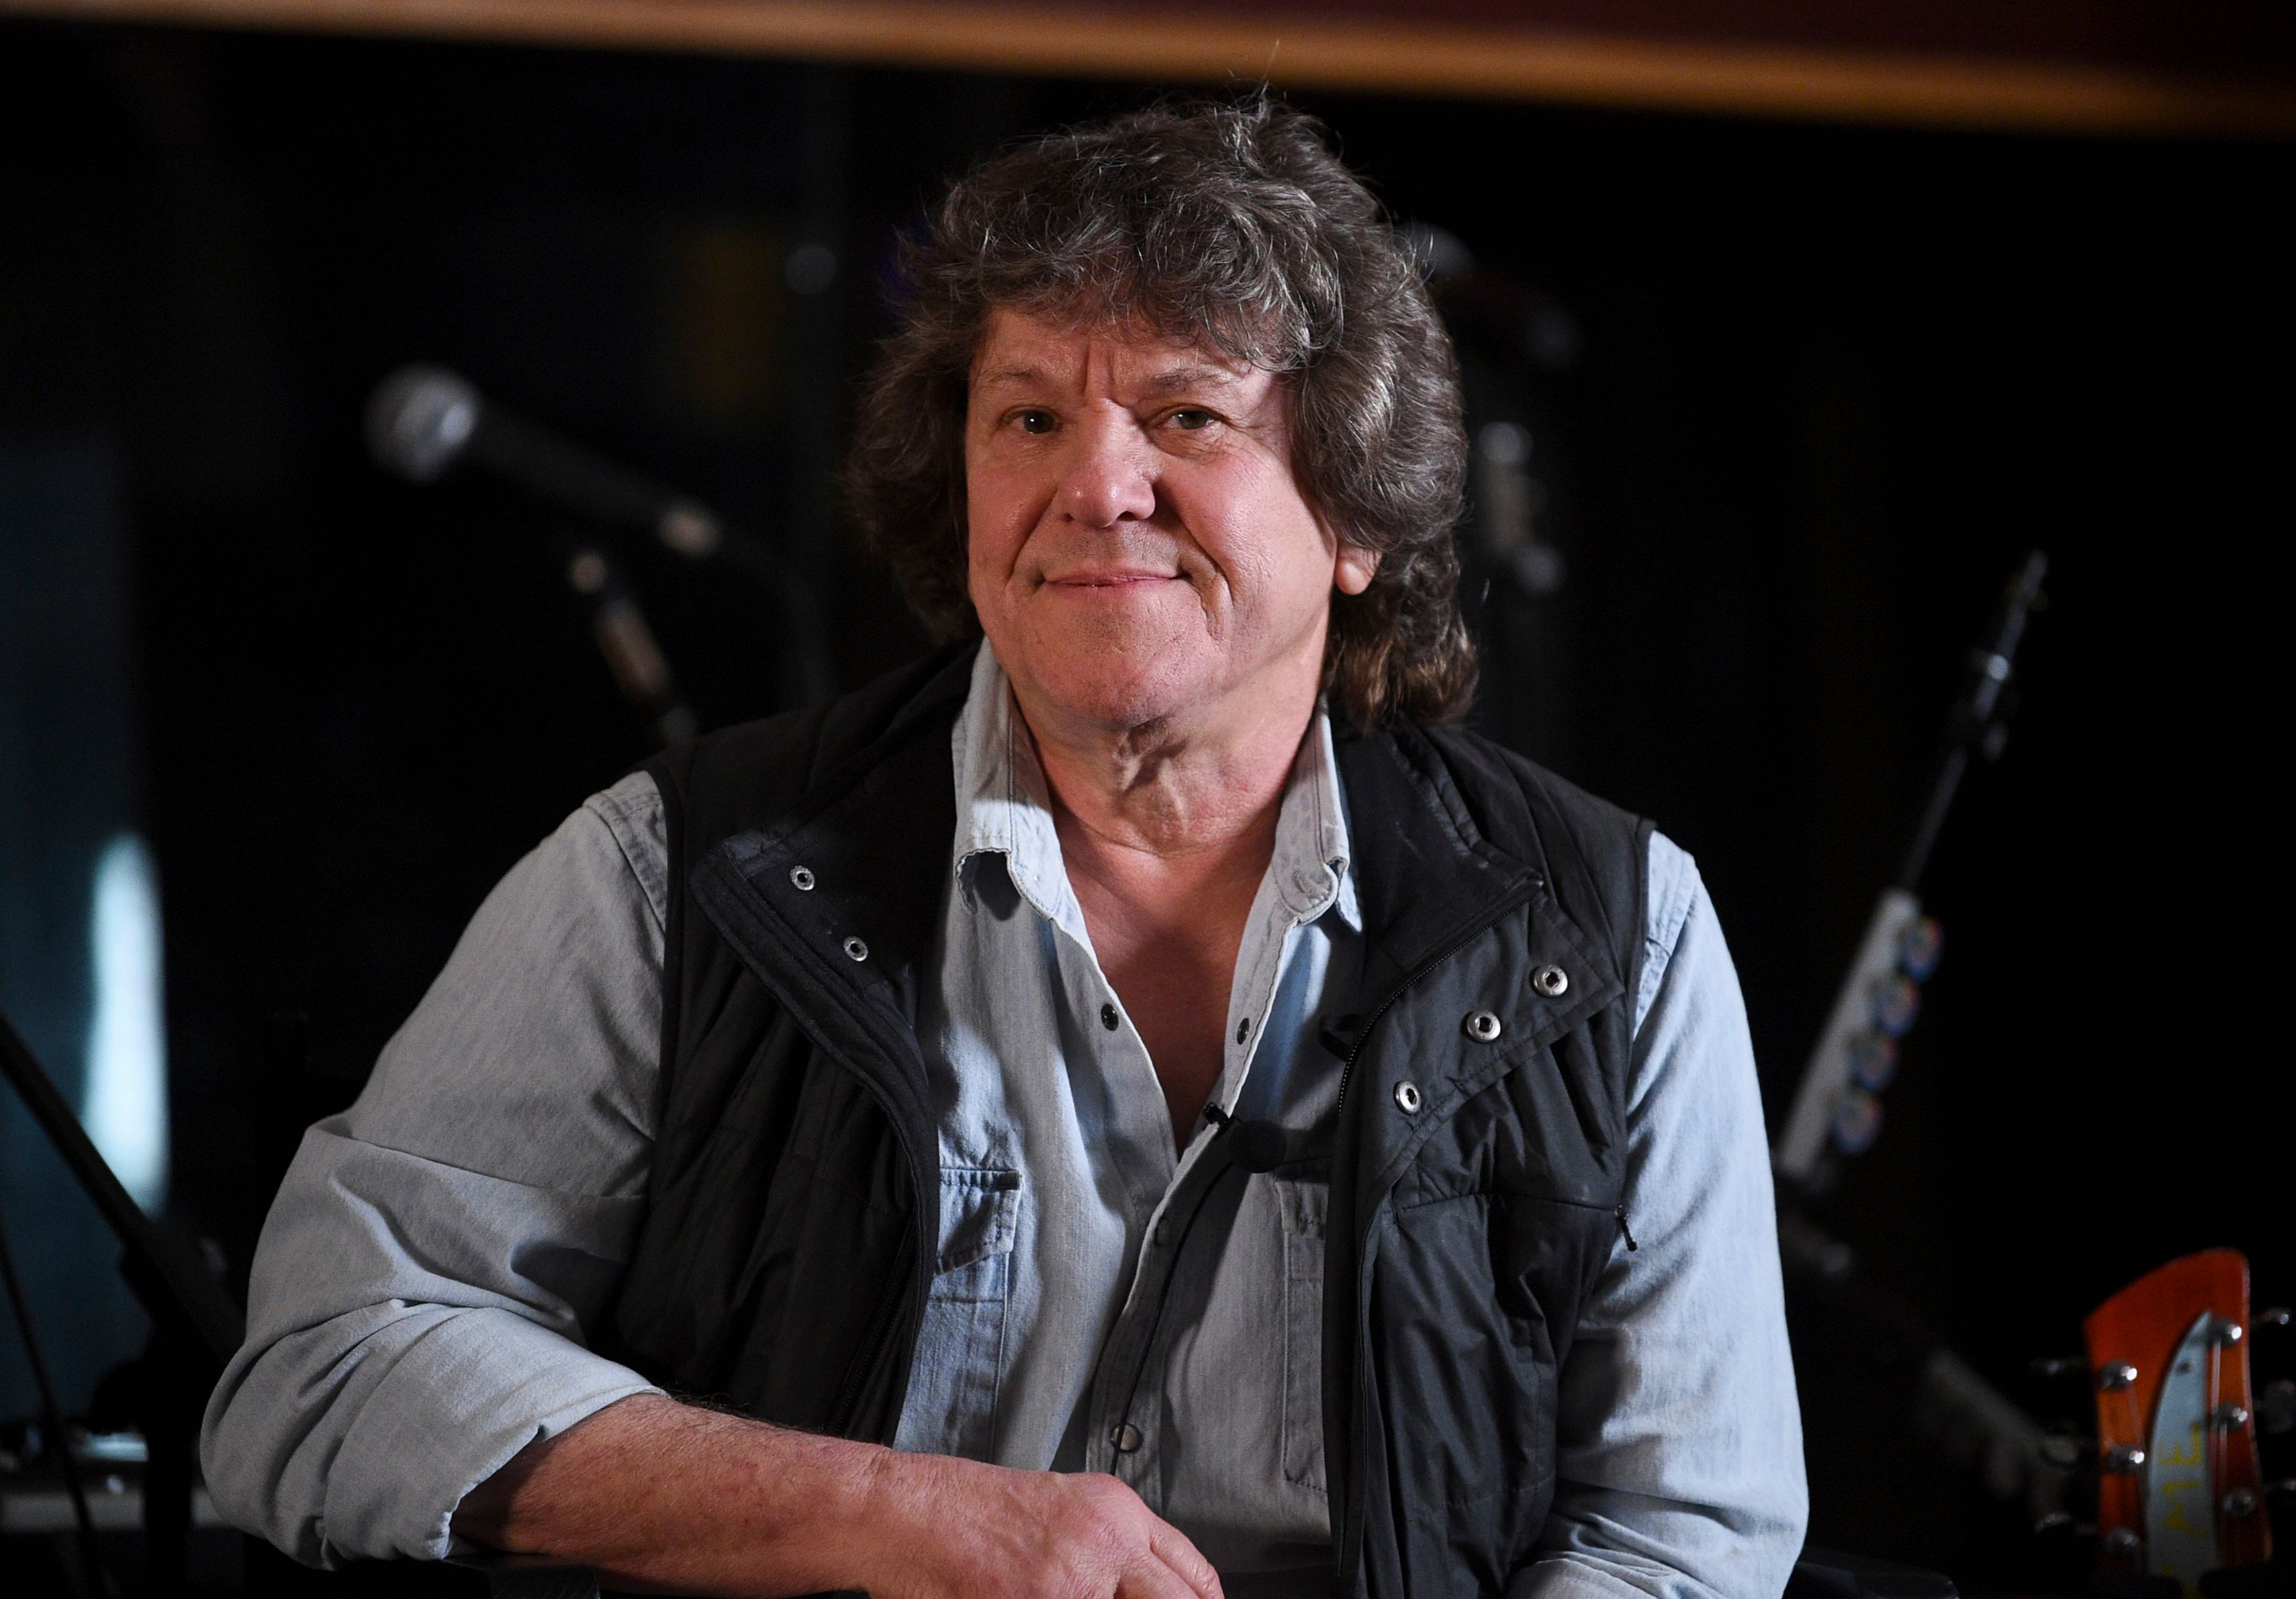 Woodstock 50: The Show Will Go On, But New Funding Needed